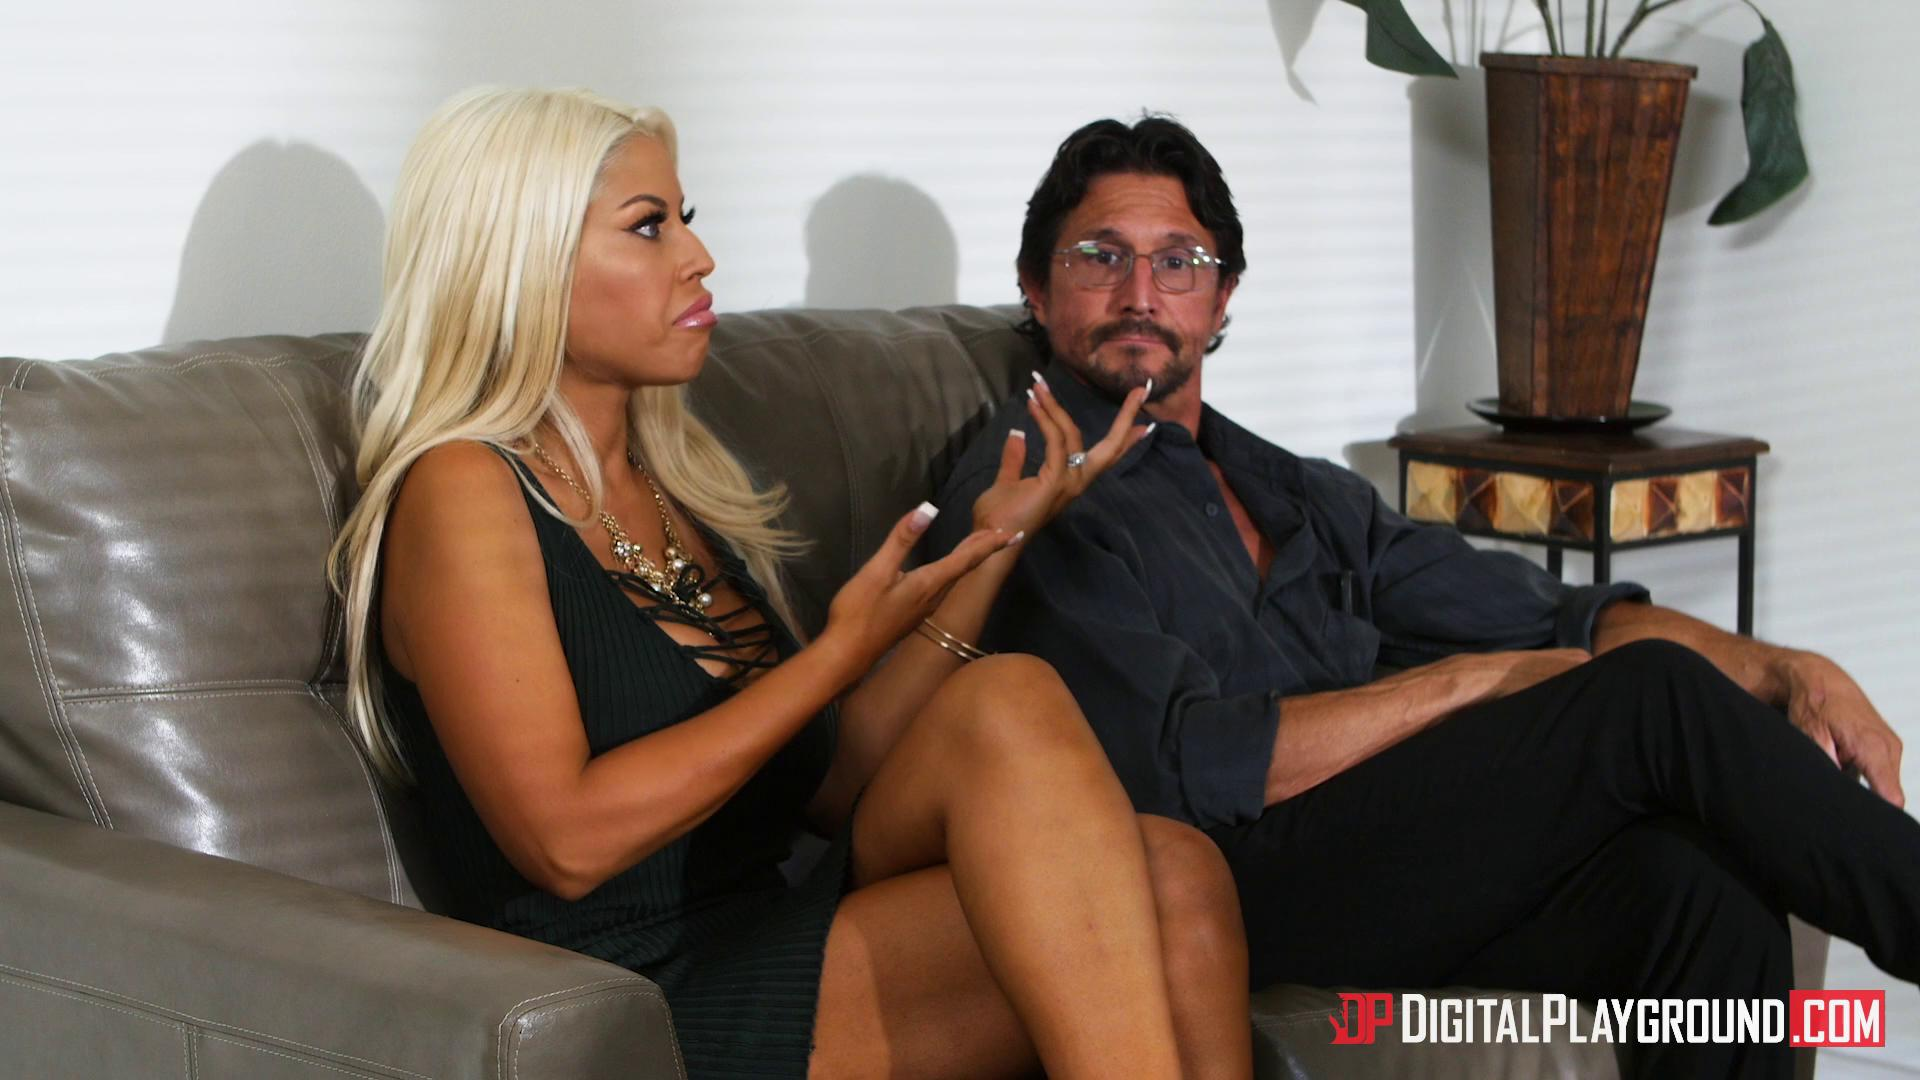 DigitalPlayground – Bridgette B And Missy Martinez Empty Nesters Episode 3